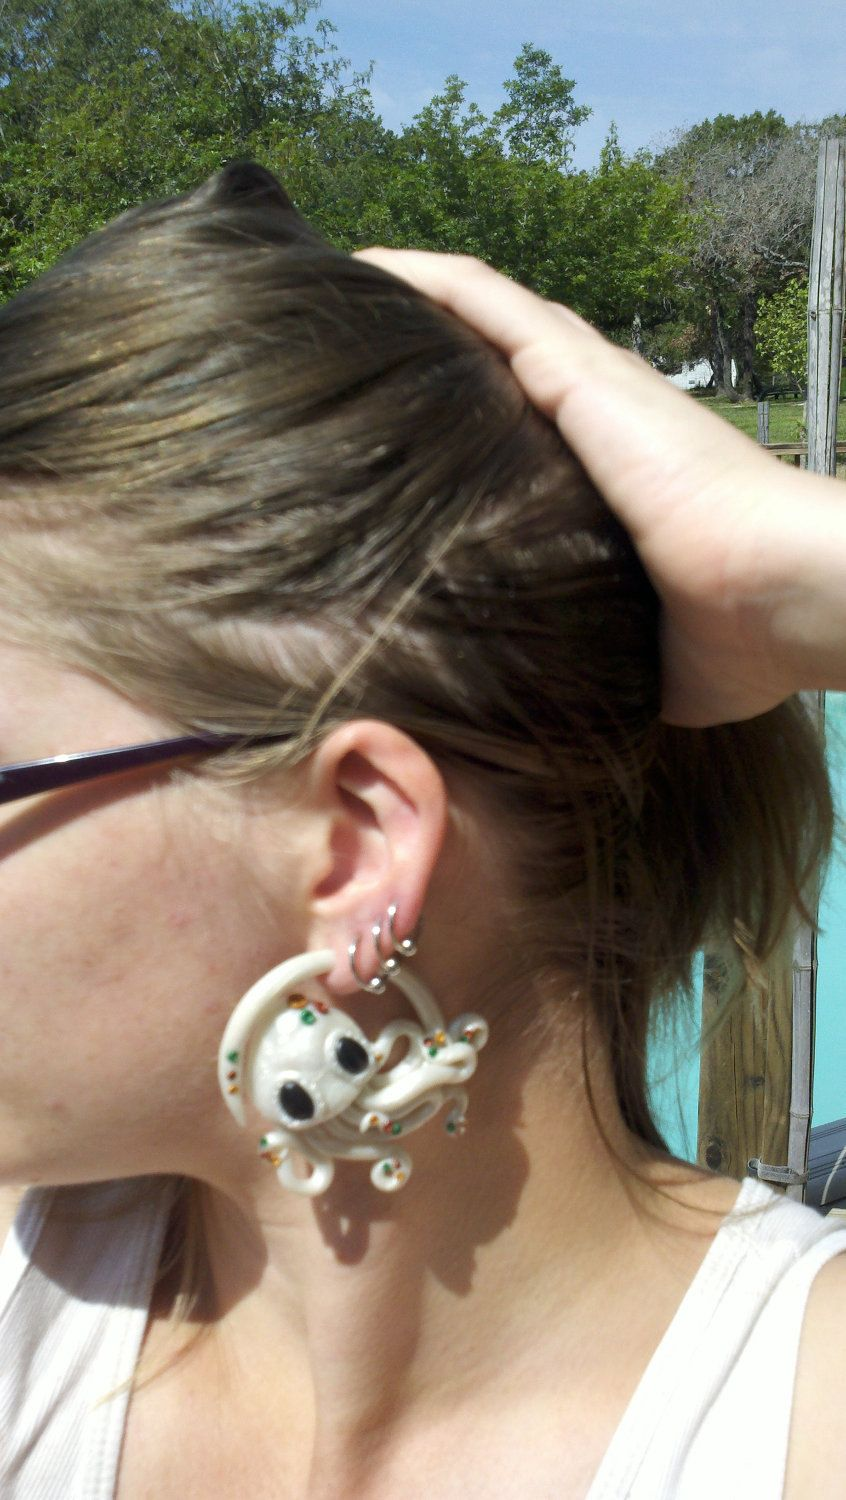 Octopus Earrings For Stretched Ears 6g 4g 2g 0g 00g Design Your Own